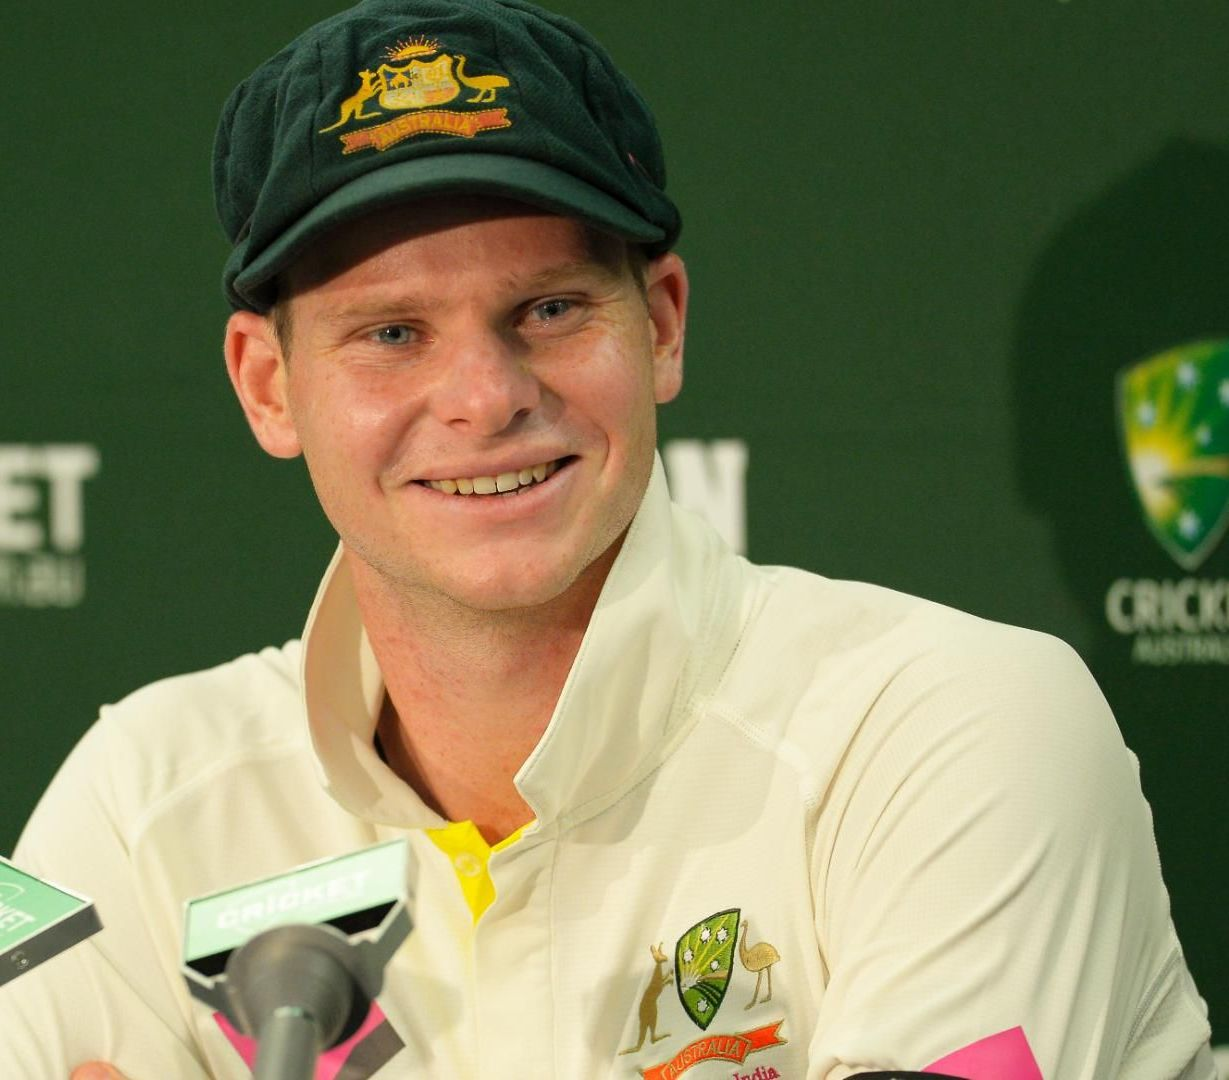 Steve Smith predicts short ball barrage against South Africa